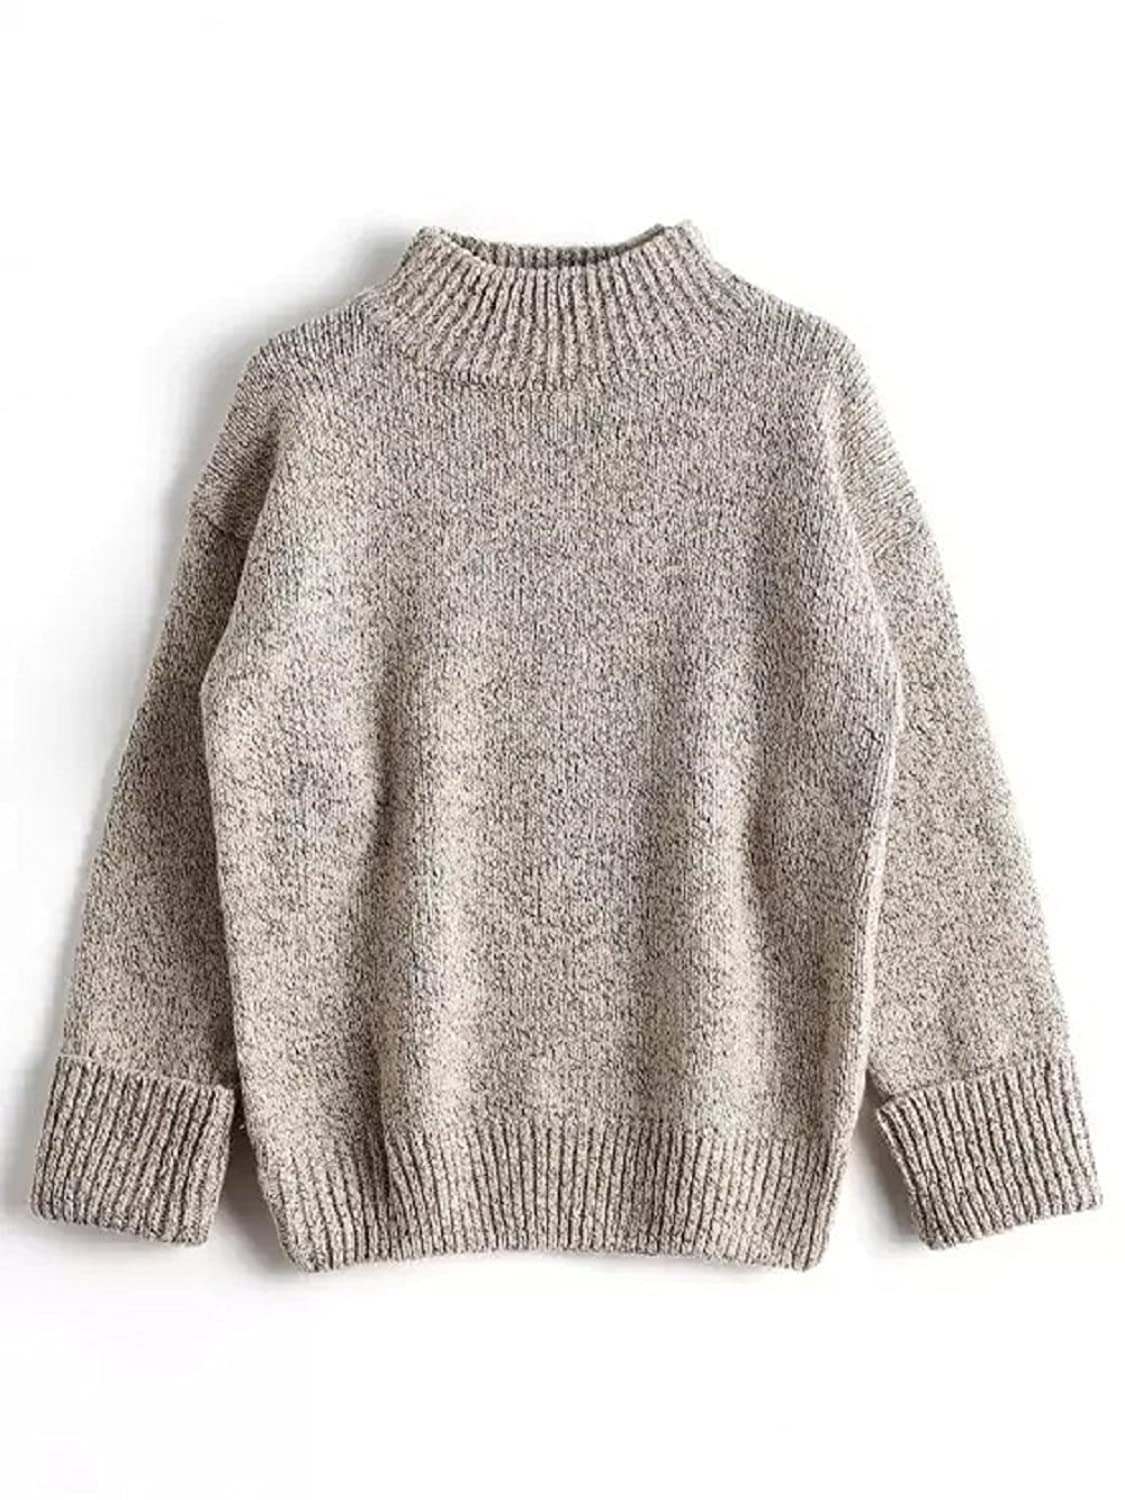 Amordaily Loose Sweater Rolled Cuff Pullover Warm Mock Neck Solid Color